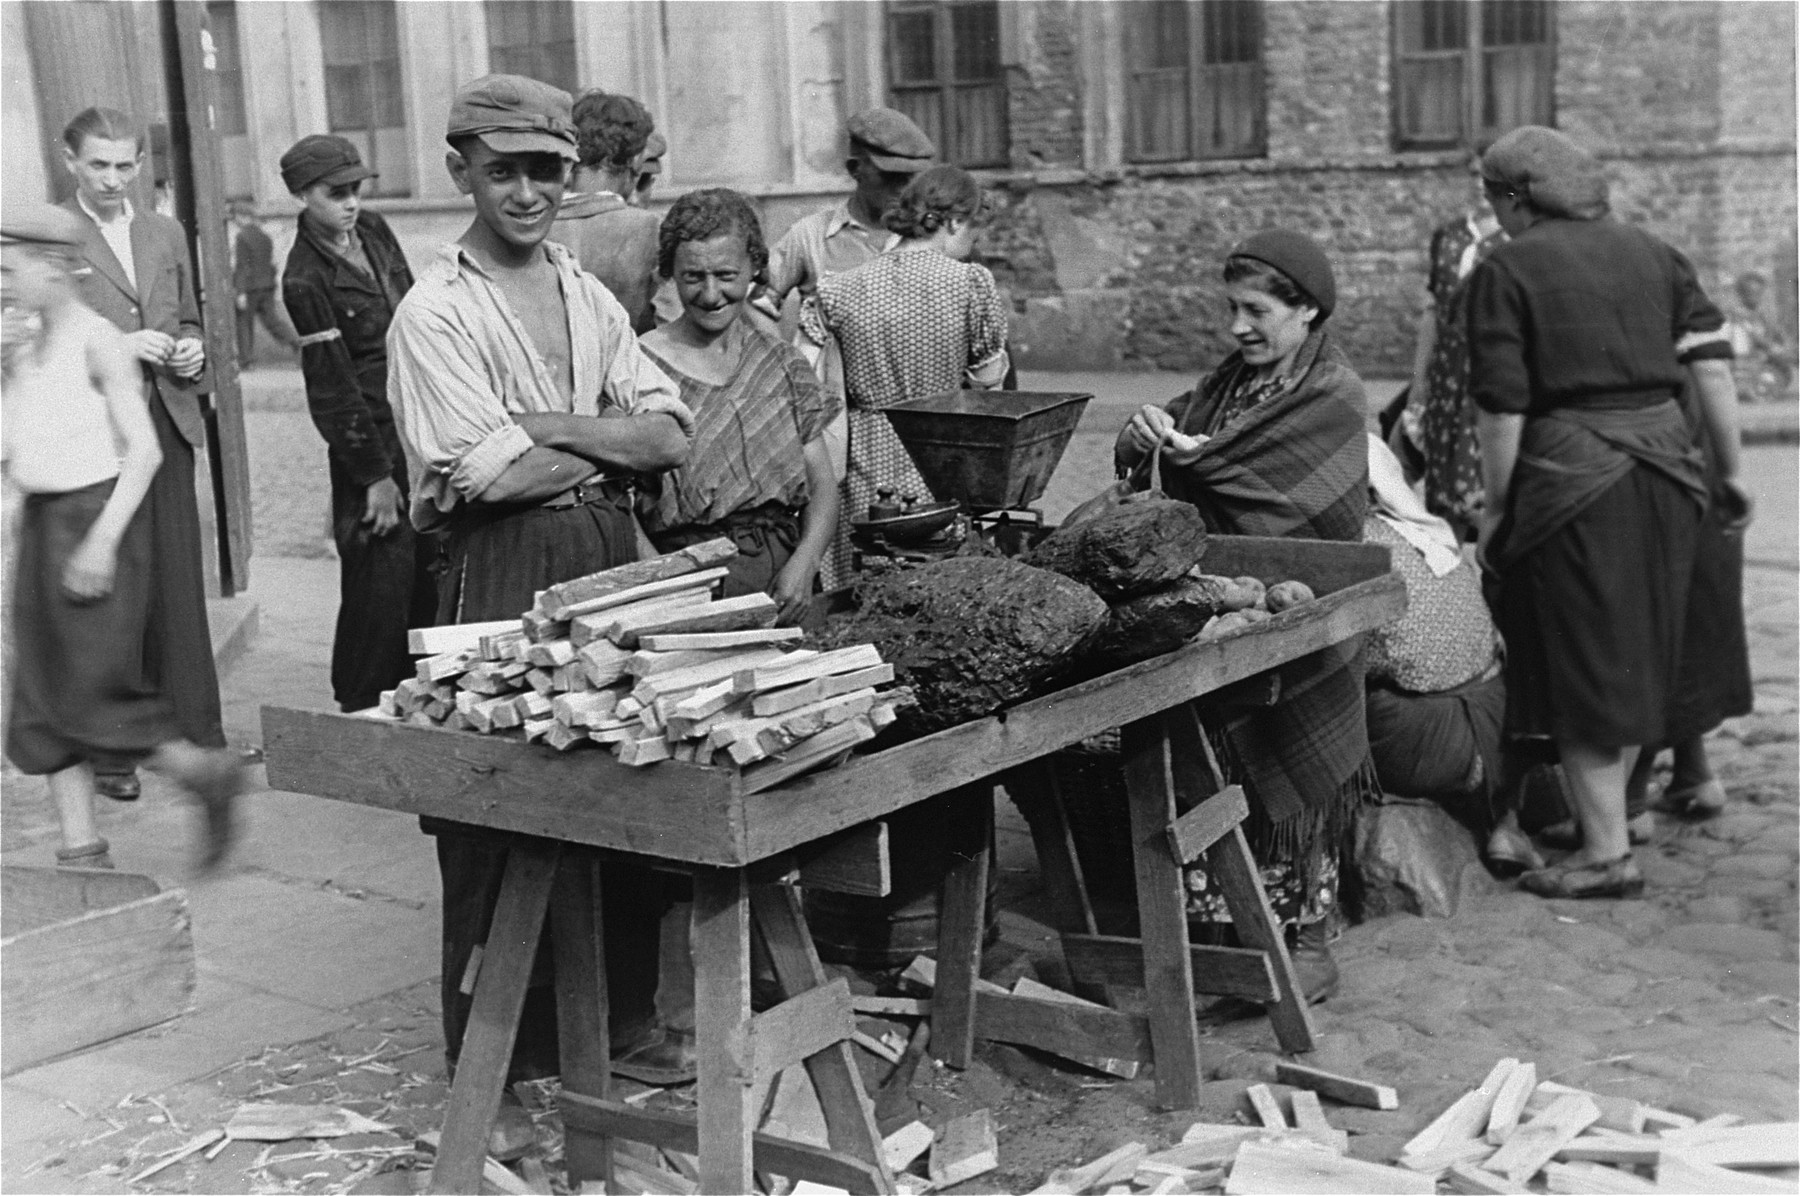 A street vendor in the Warsaw ghetto selling coal and kindling.